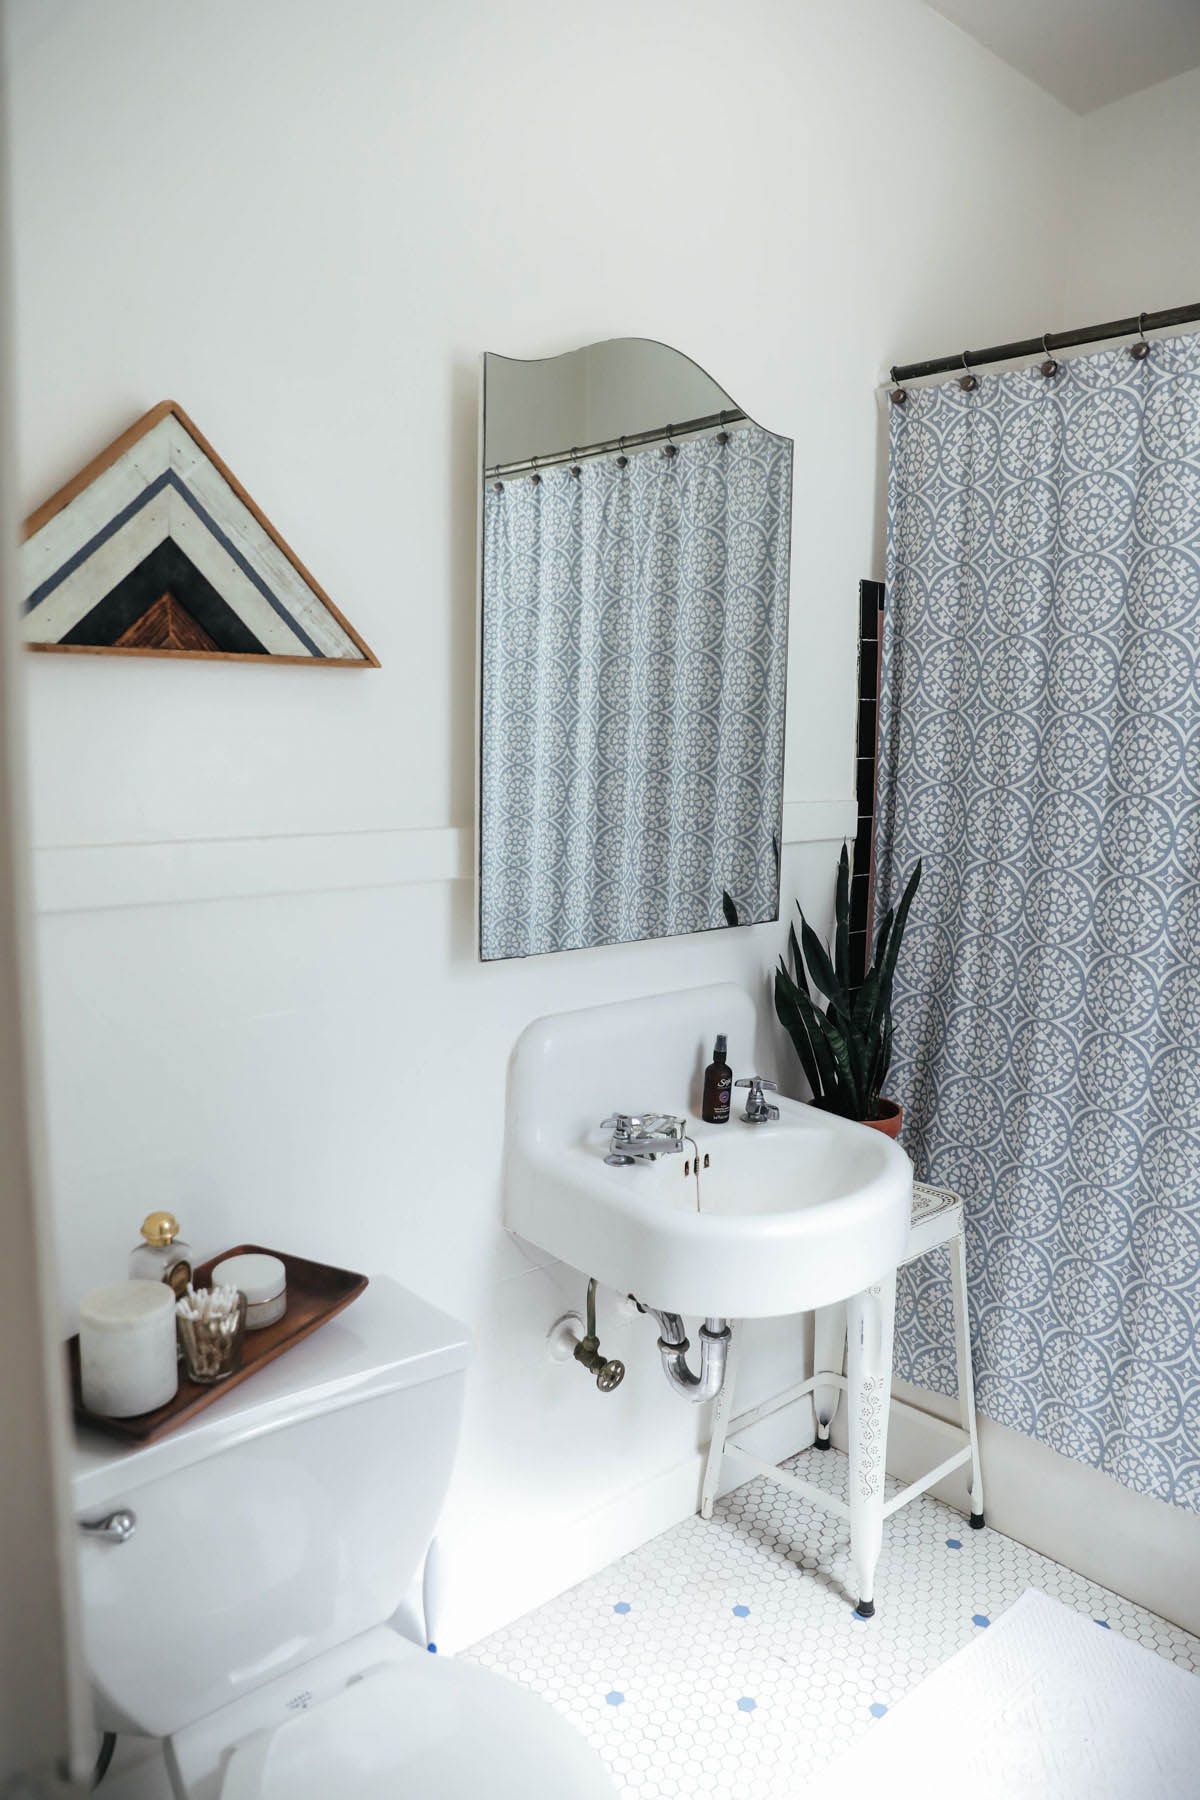 How to keep a clean bathroom when living with roommates for How to keep bathroom clean